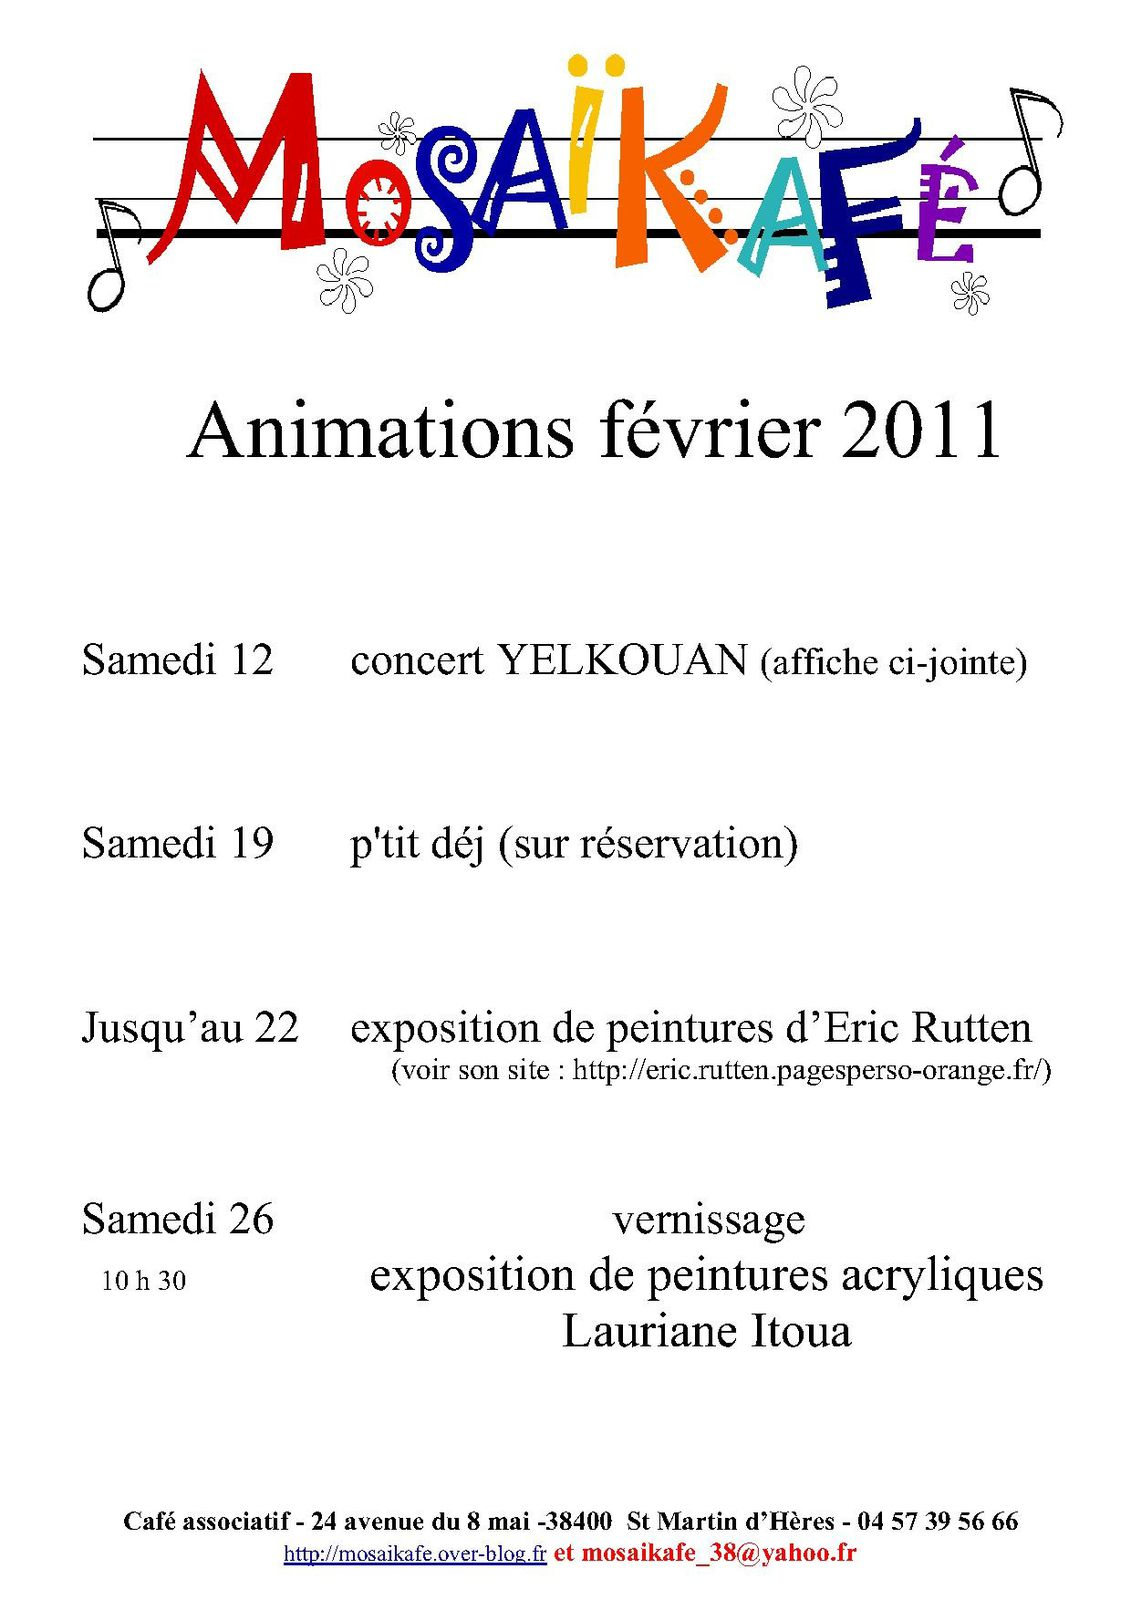 Animations-fevrier-2011-jpeg.jpg